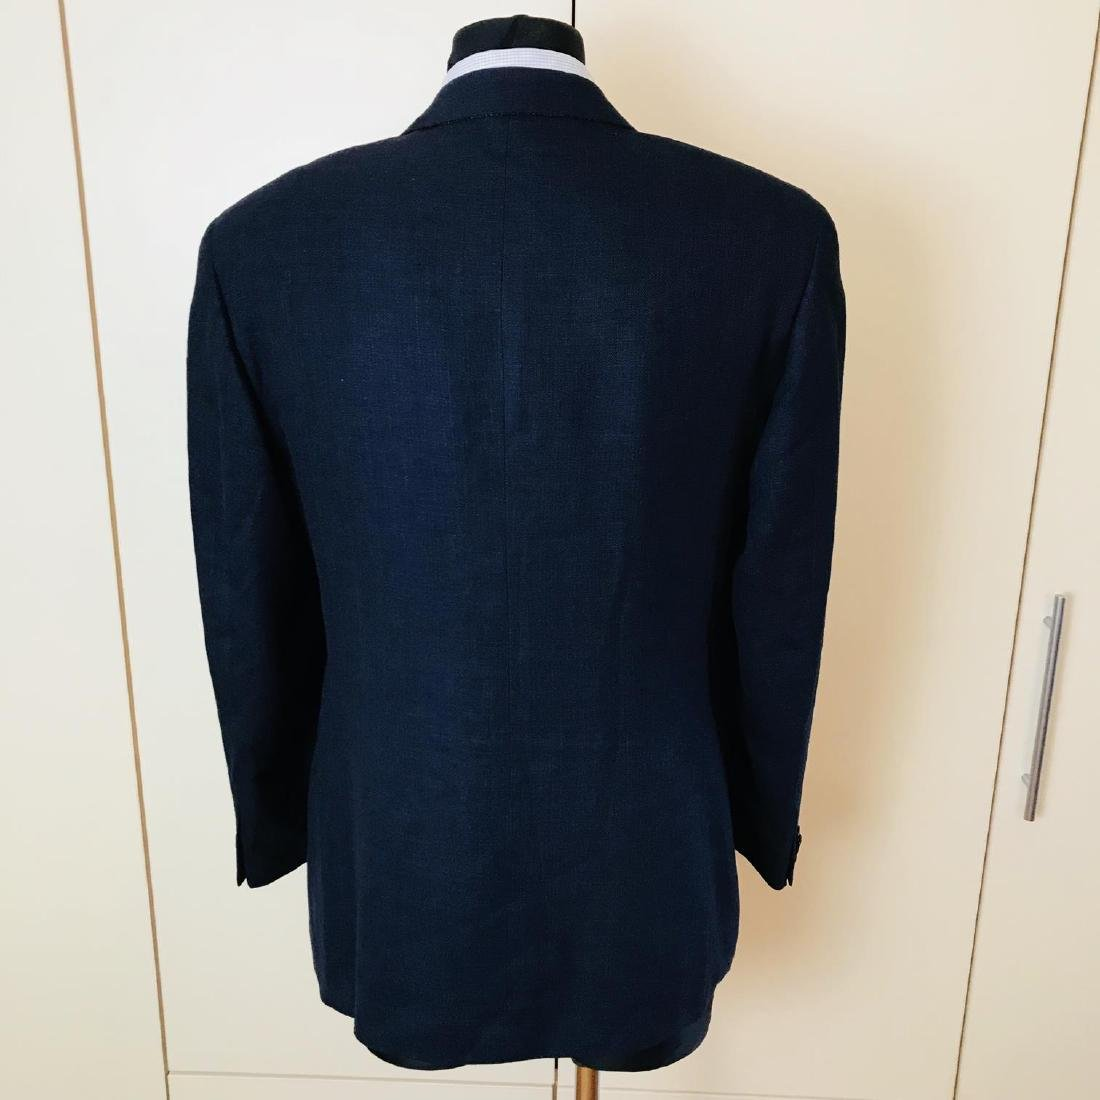 Men's SAND Navy Blue Linen Blend Jacket Blazer Size 38 - 4